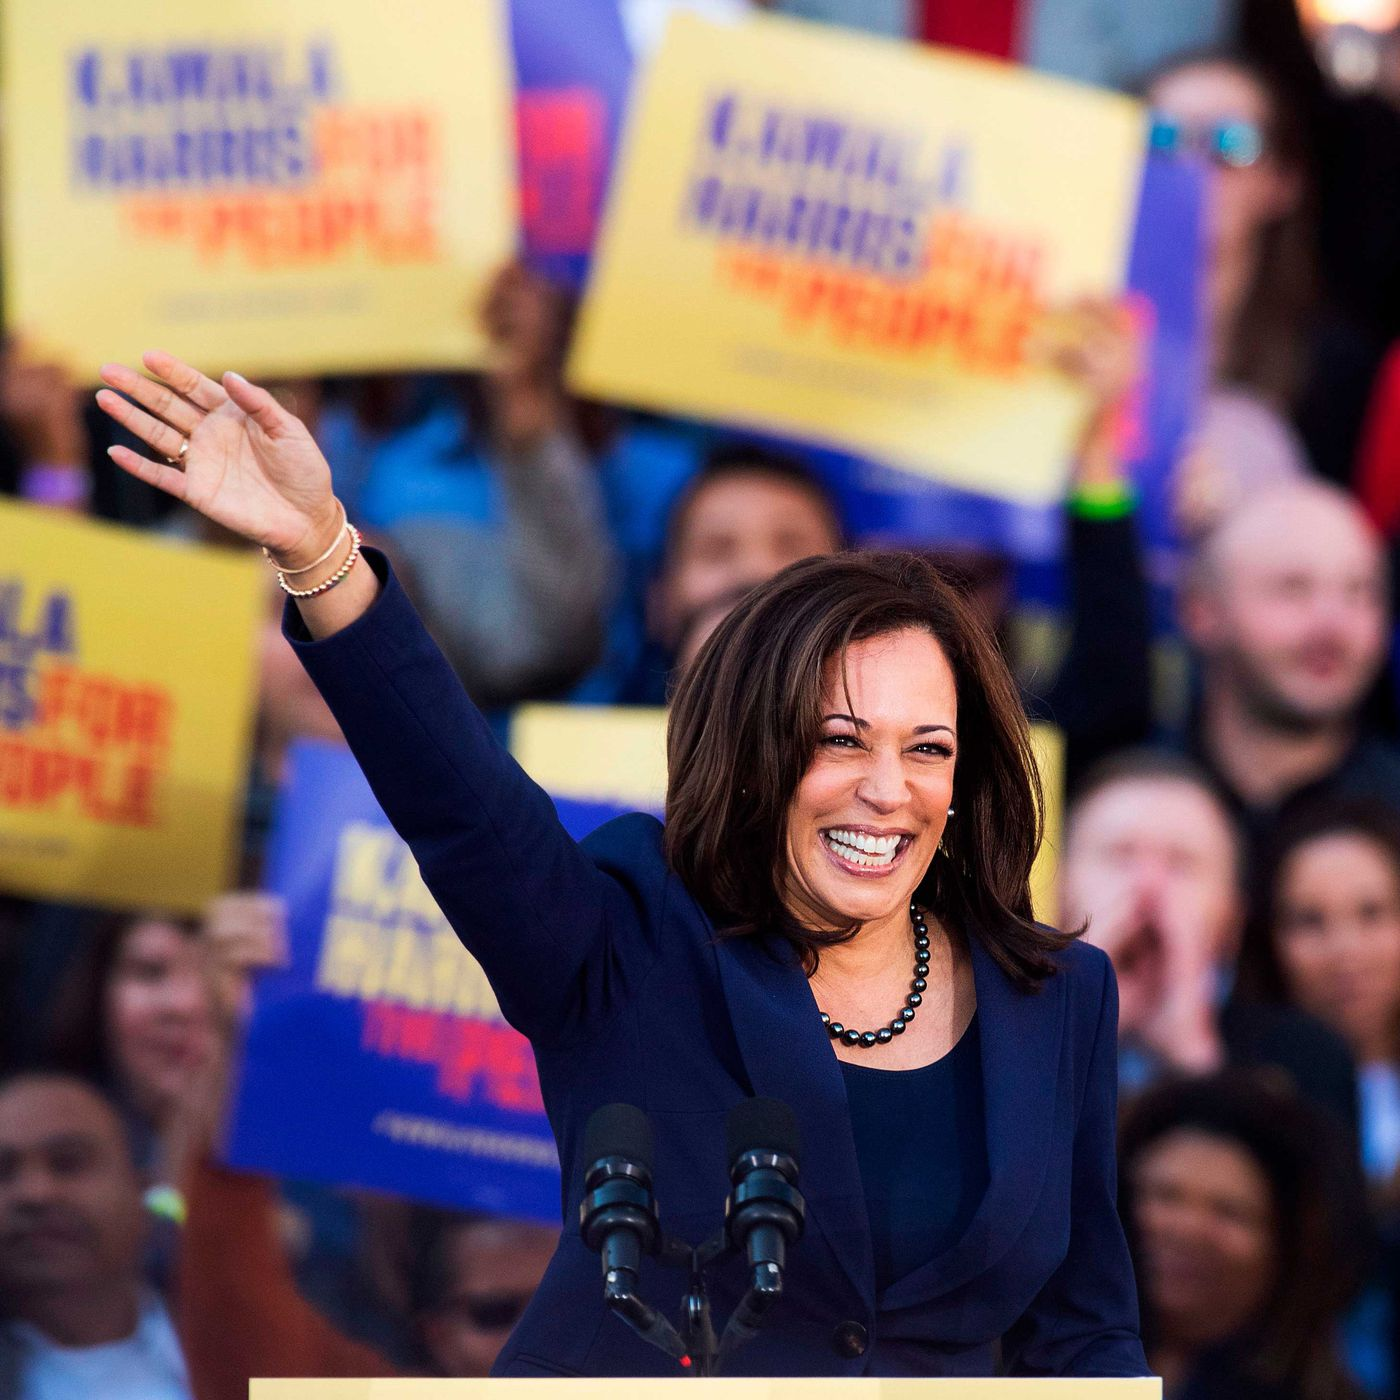 Who Is Kamala Harris Her 2020 Presidential Campaign And Policies Explained Vox